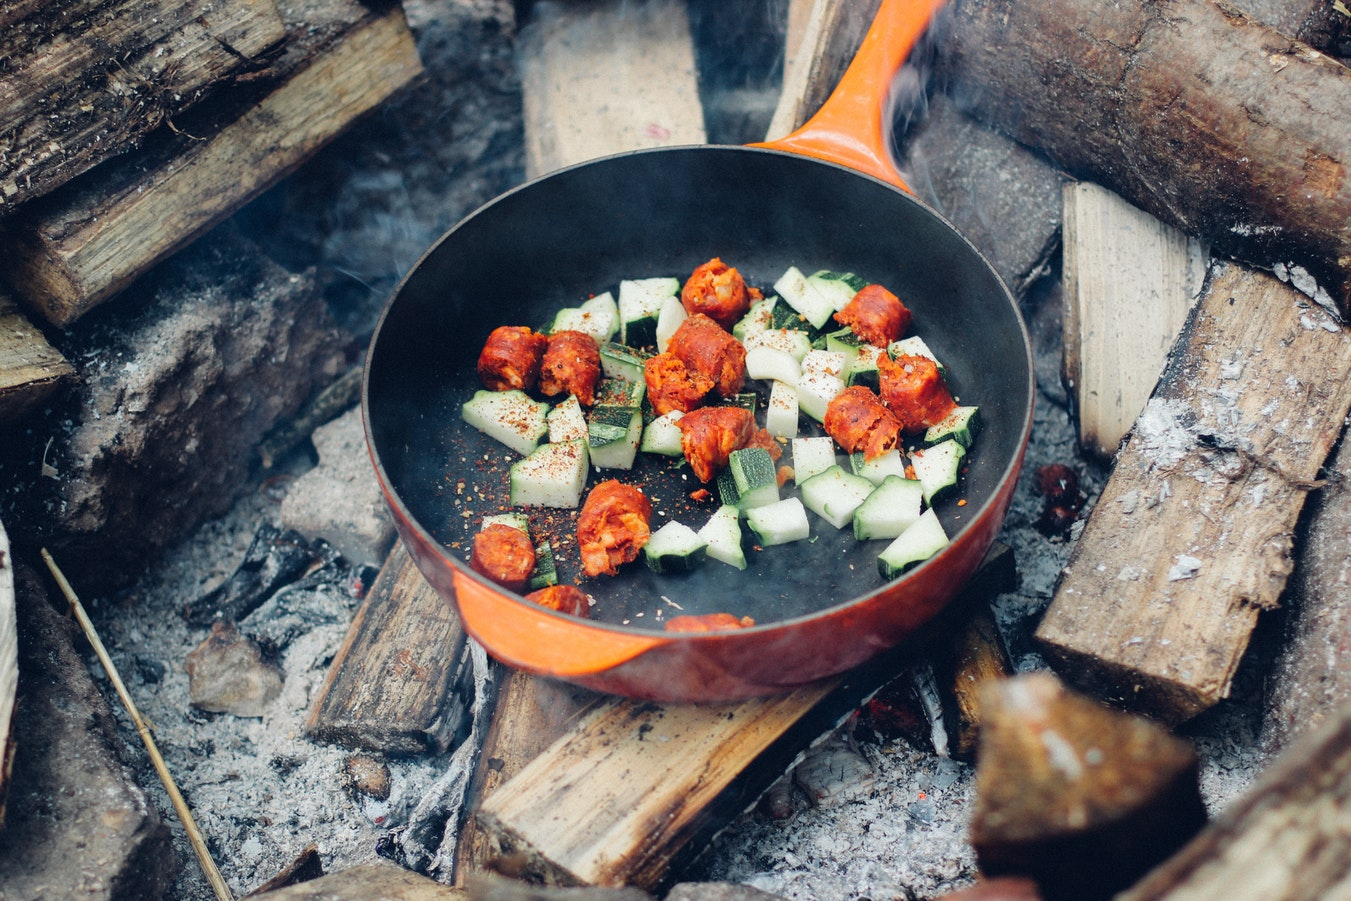 Easy delicious campfire meal idea